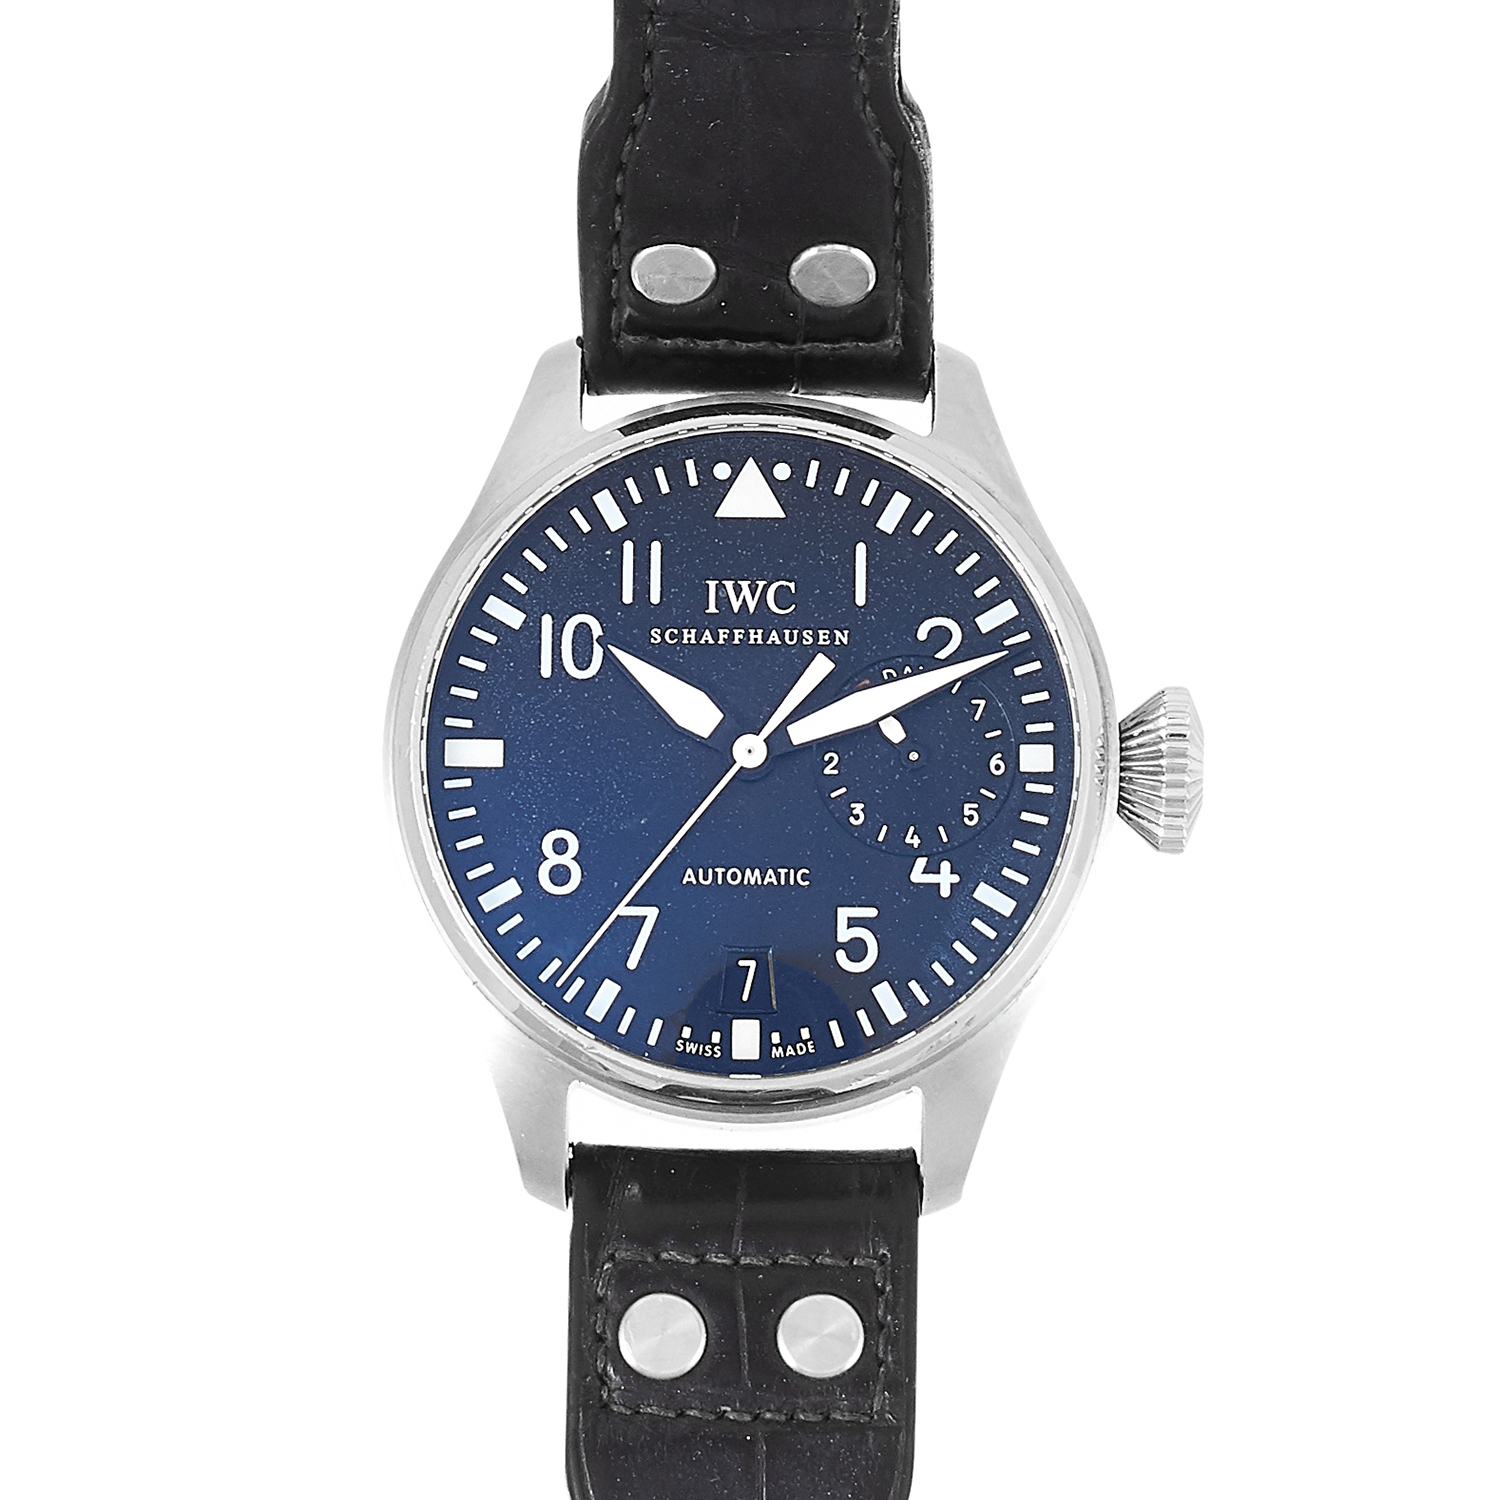 Los 110 - A IWC 'PILOT' MENS WRISTWATCH in steel, with black dial, with black leather strap, 144.28g.